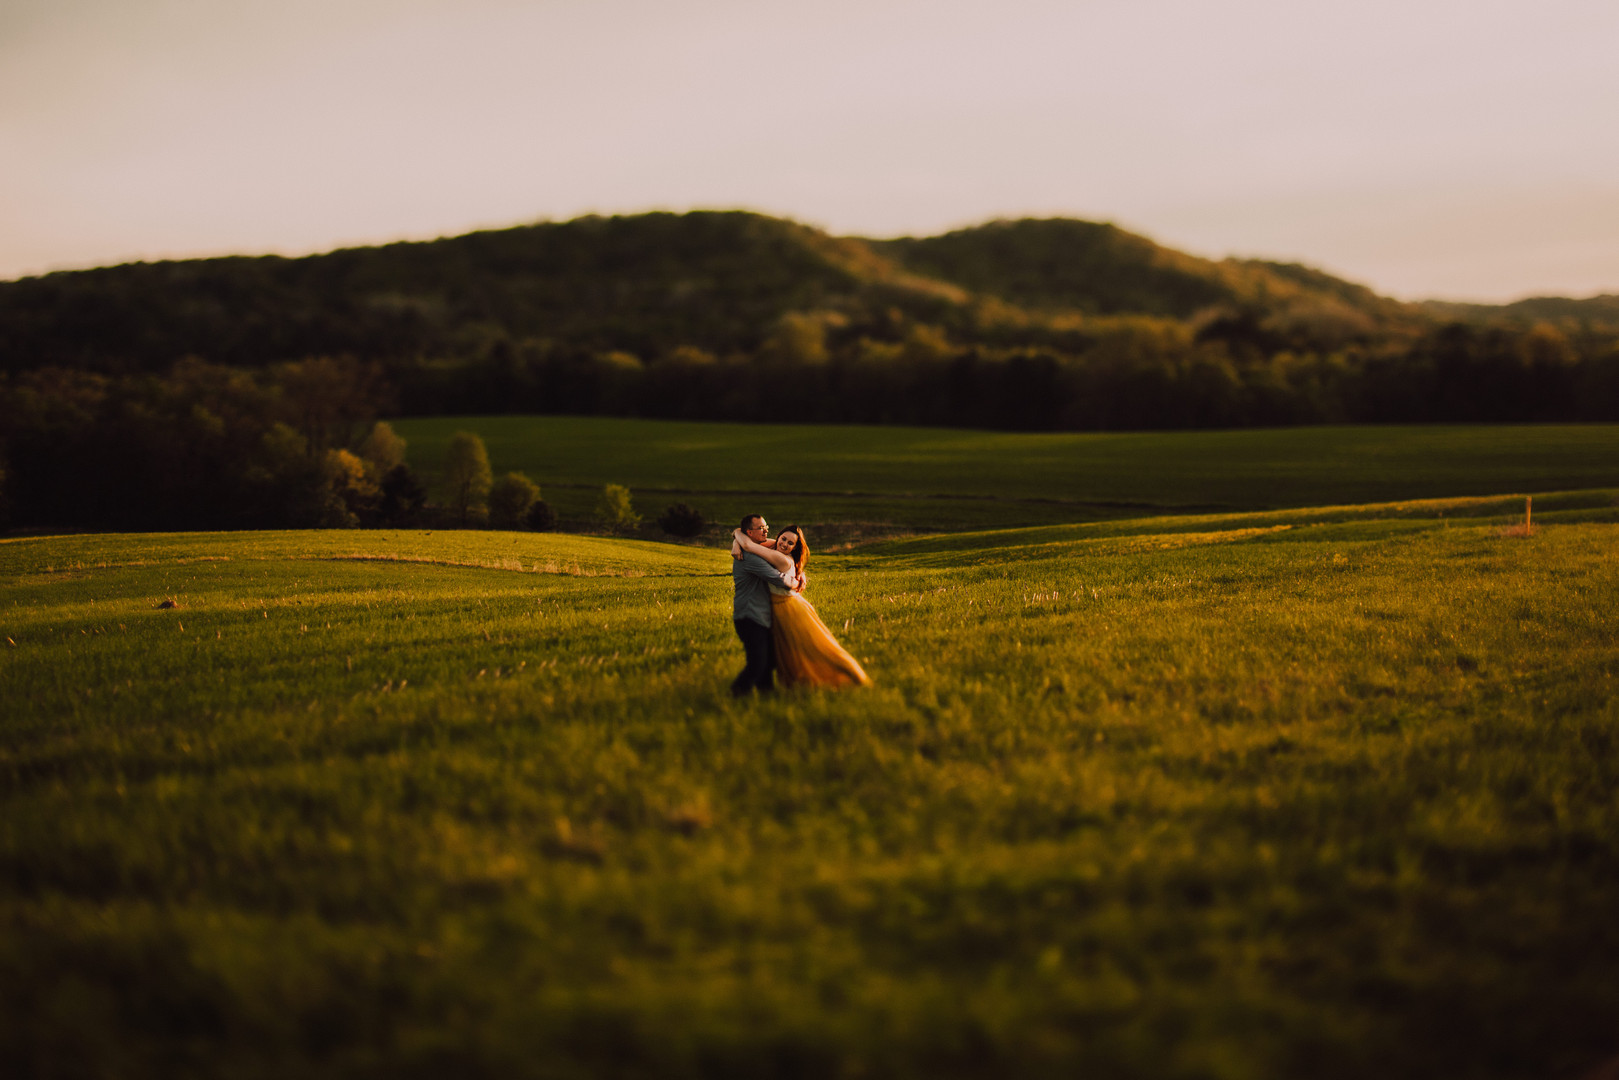 A man and woman dance at sunset on hilly farm fields in Kickapoo Wisconsin